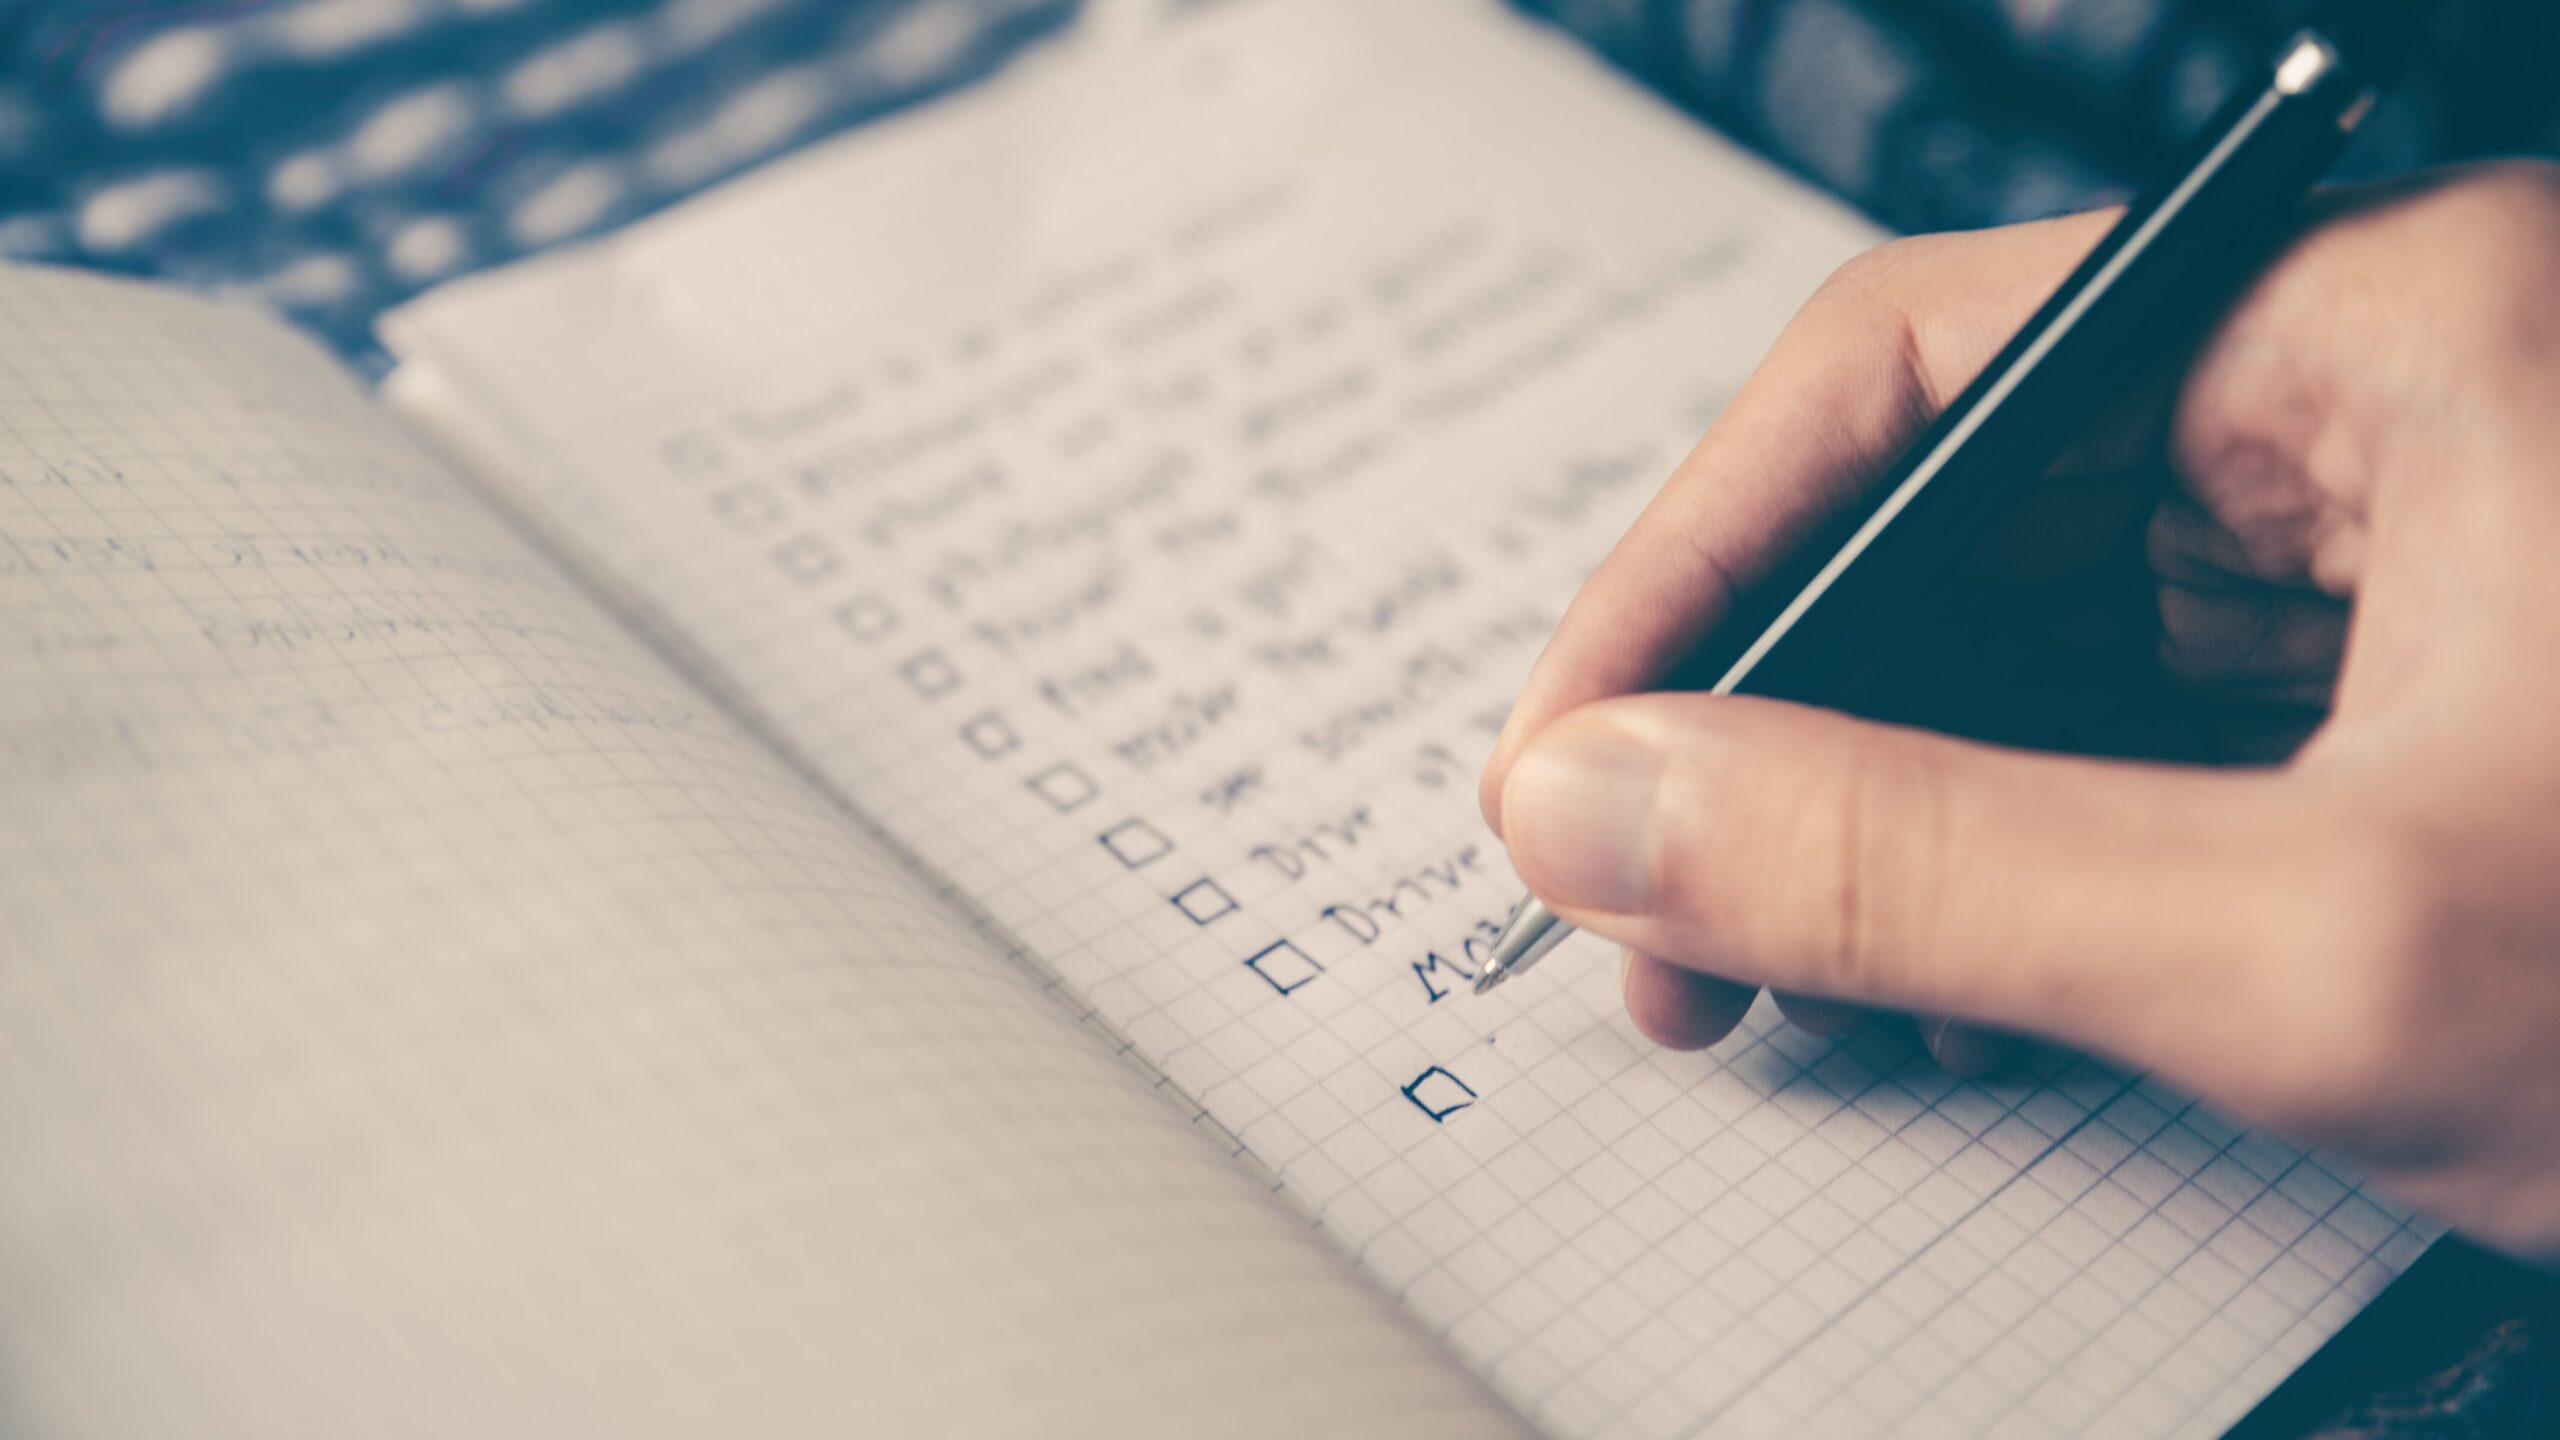 Does your organization comply with the FIU checklist? Download the checklist here.